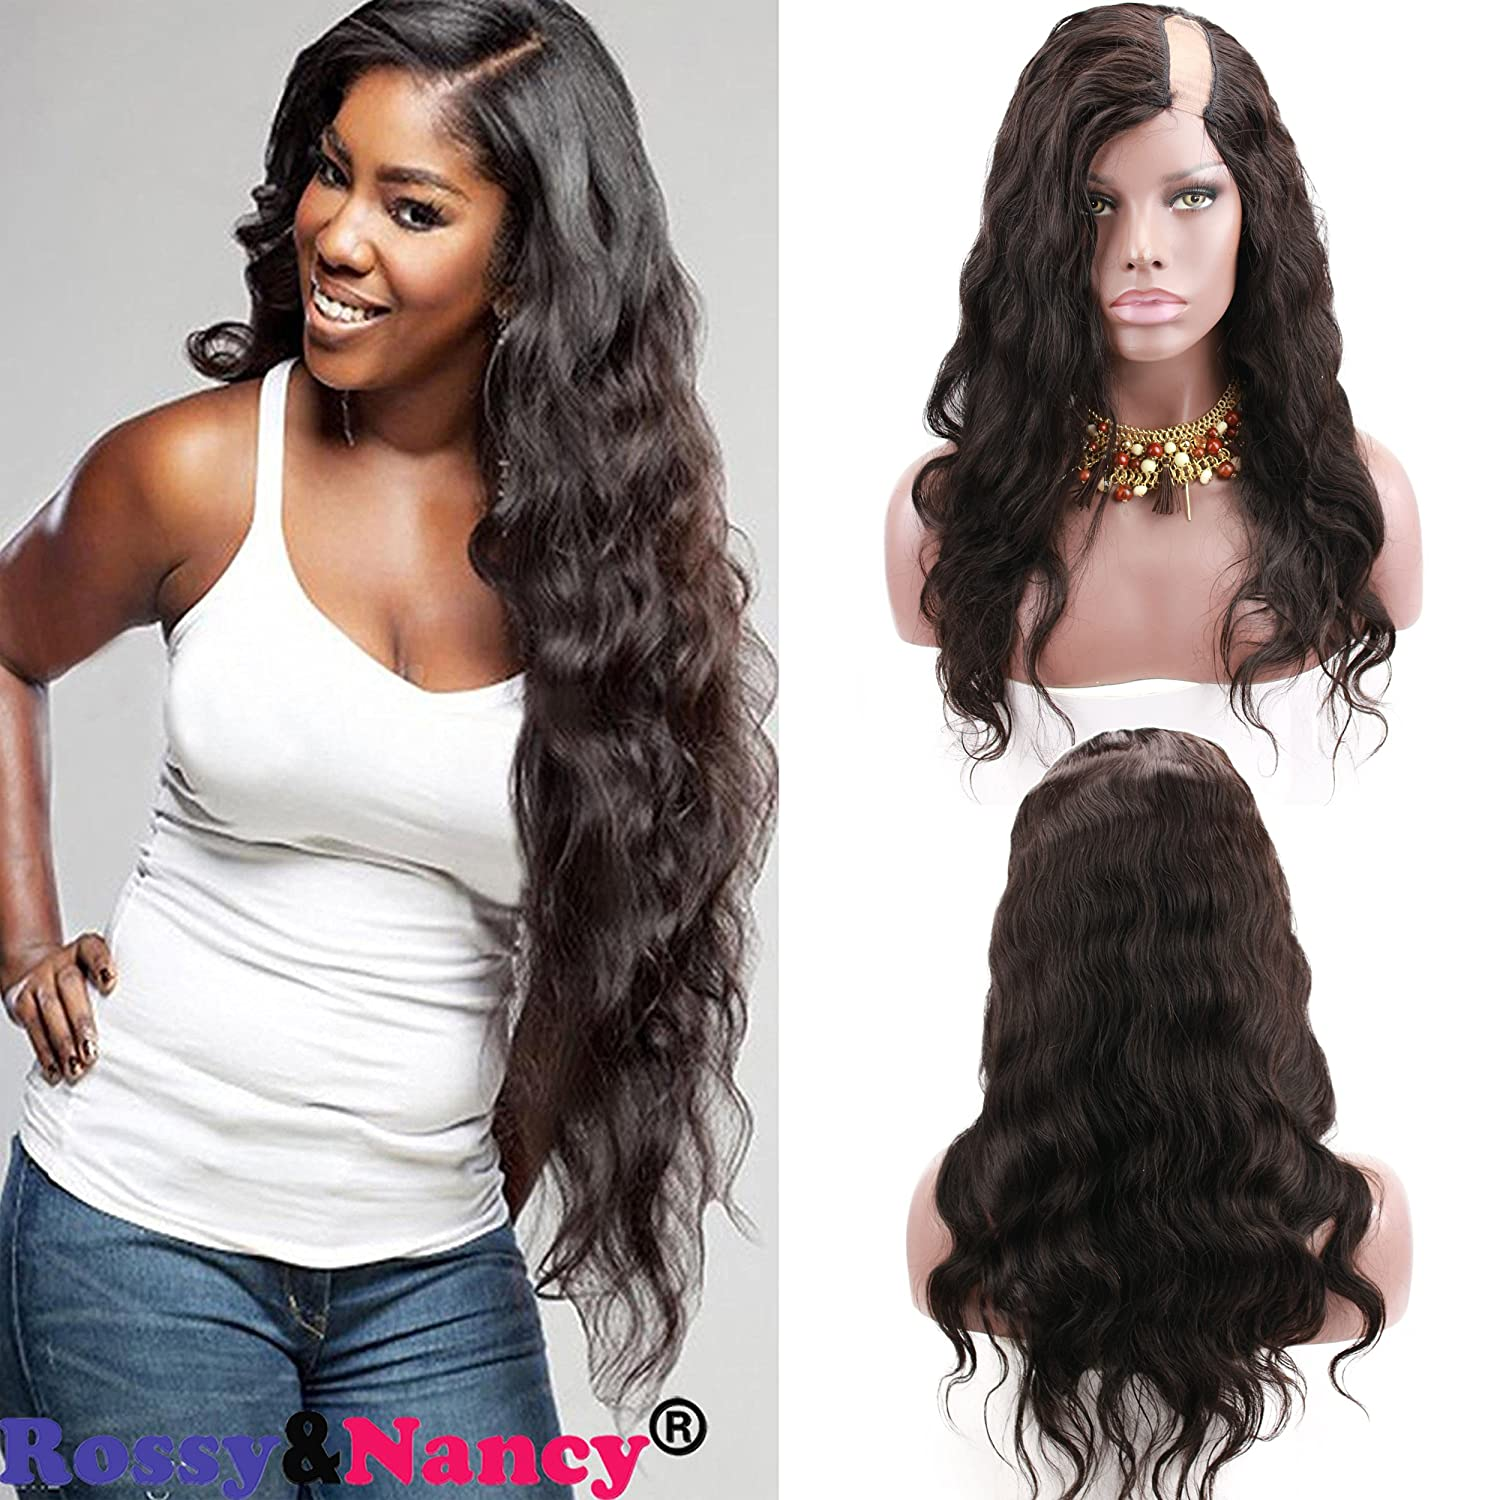 bb27ad0b9 Amazon.com : Rossy&Nancy Cheap Human Hair Left U Part Body Wave Lace Front  Wig For Black Women Natural Black Color 18inch : Beauty